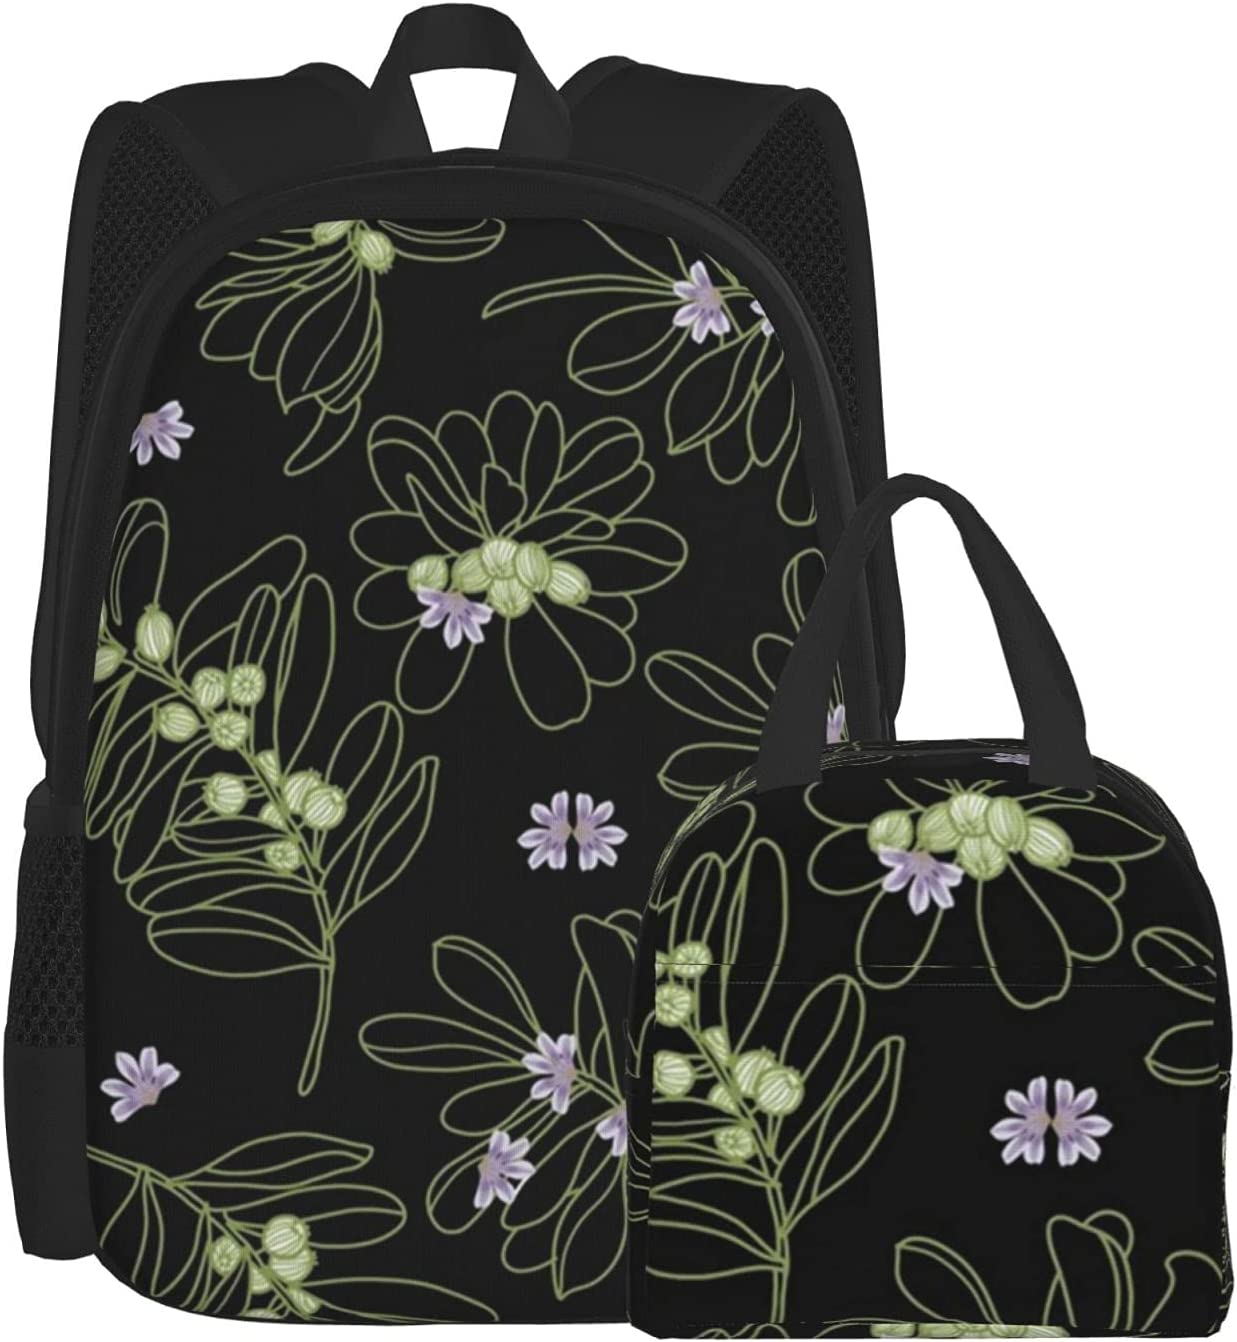 Chicago Mall Lunch Bag And Backpack Combination Naupaka Outline Bo Black Pack Max 56% OFF